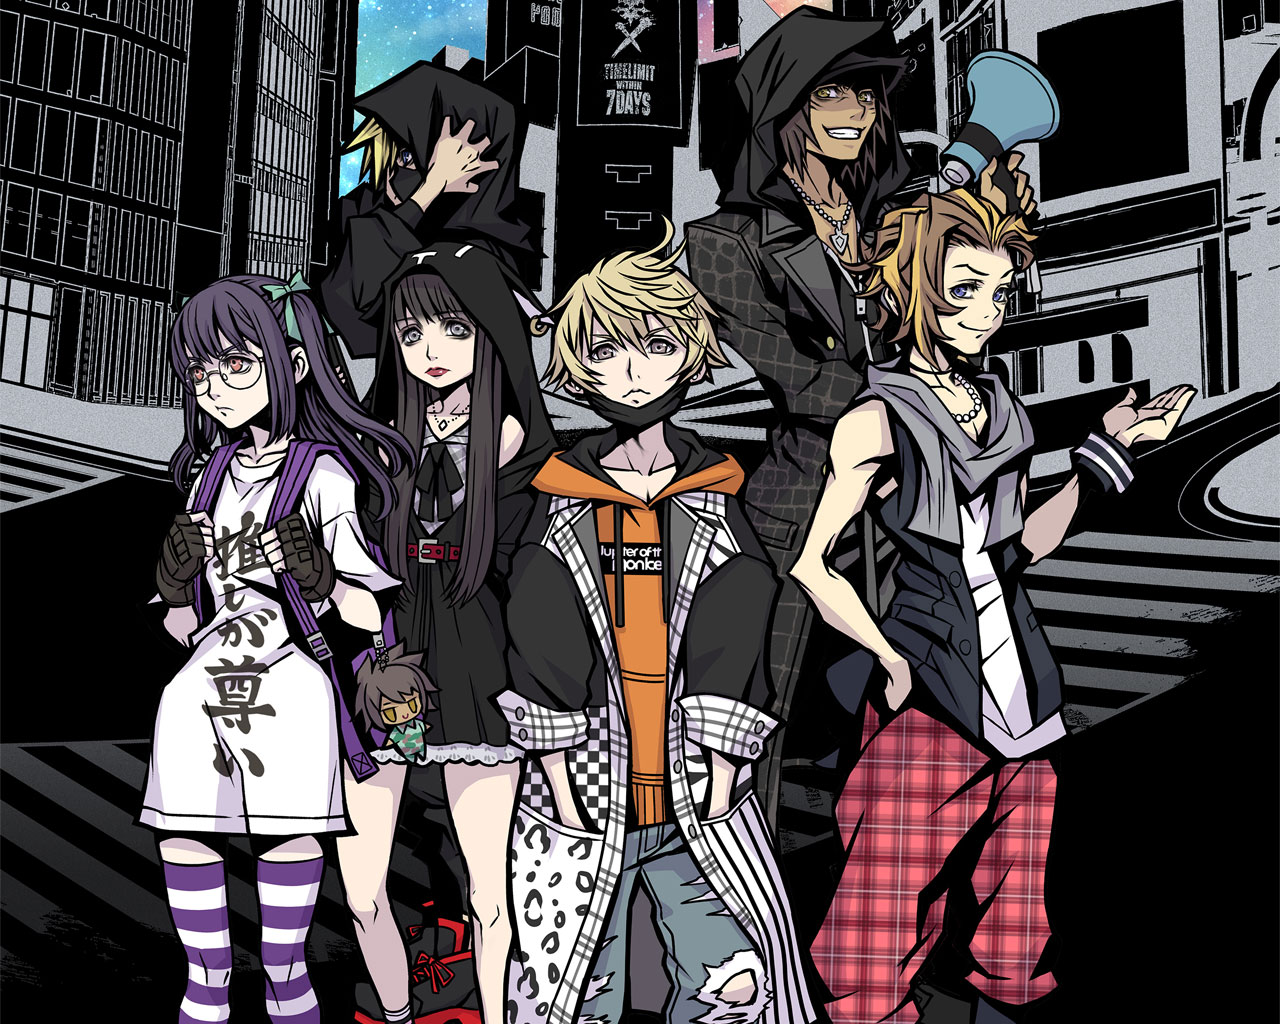 Free NEO: The World Ends with You Wallpaper in 1280x1024